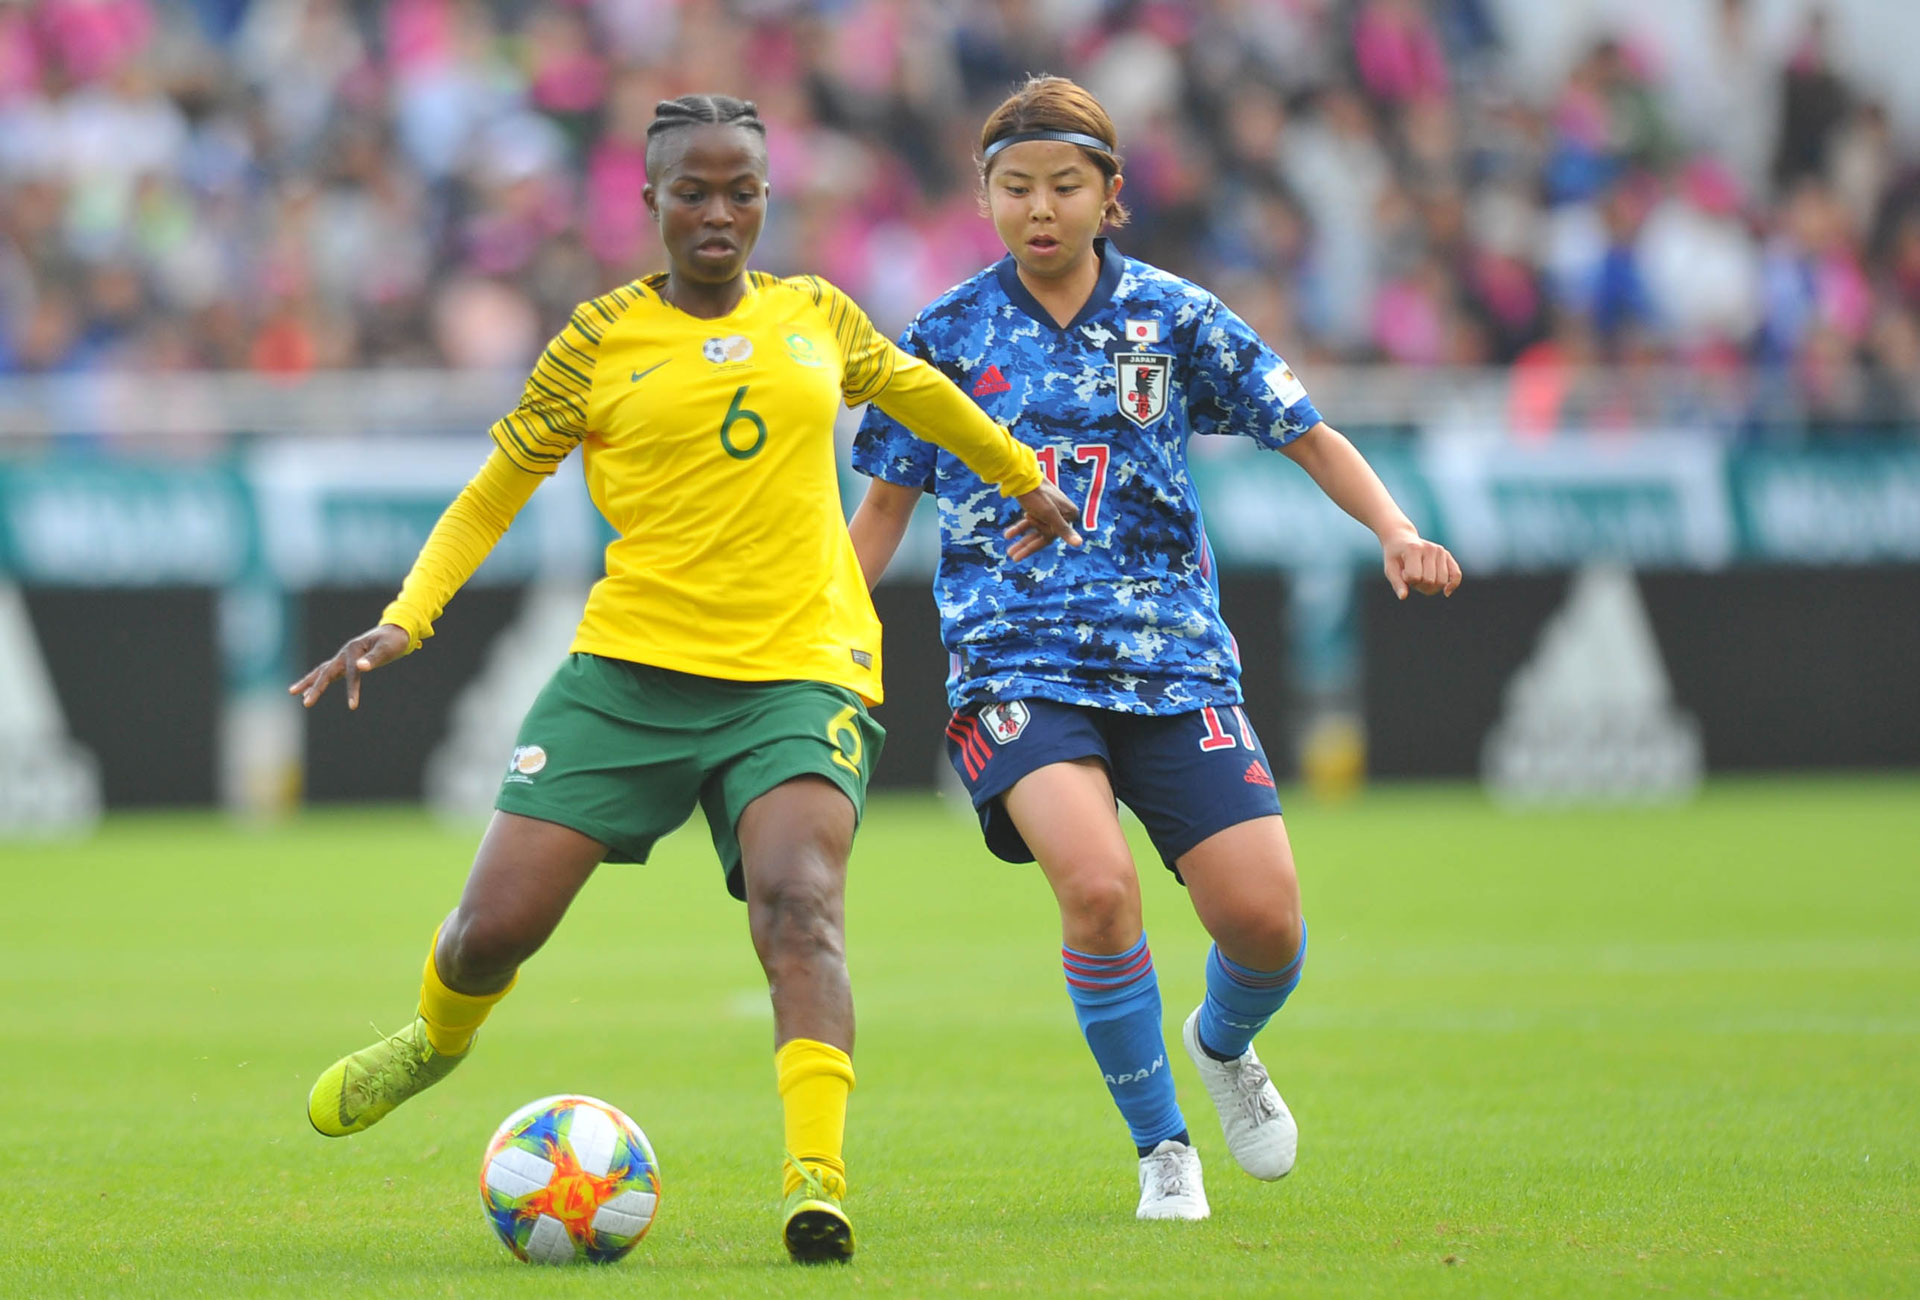 banyana banyana player kicking the ball in the game against japan